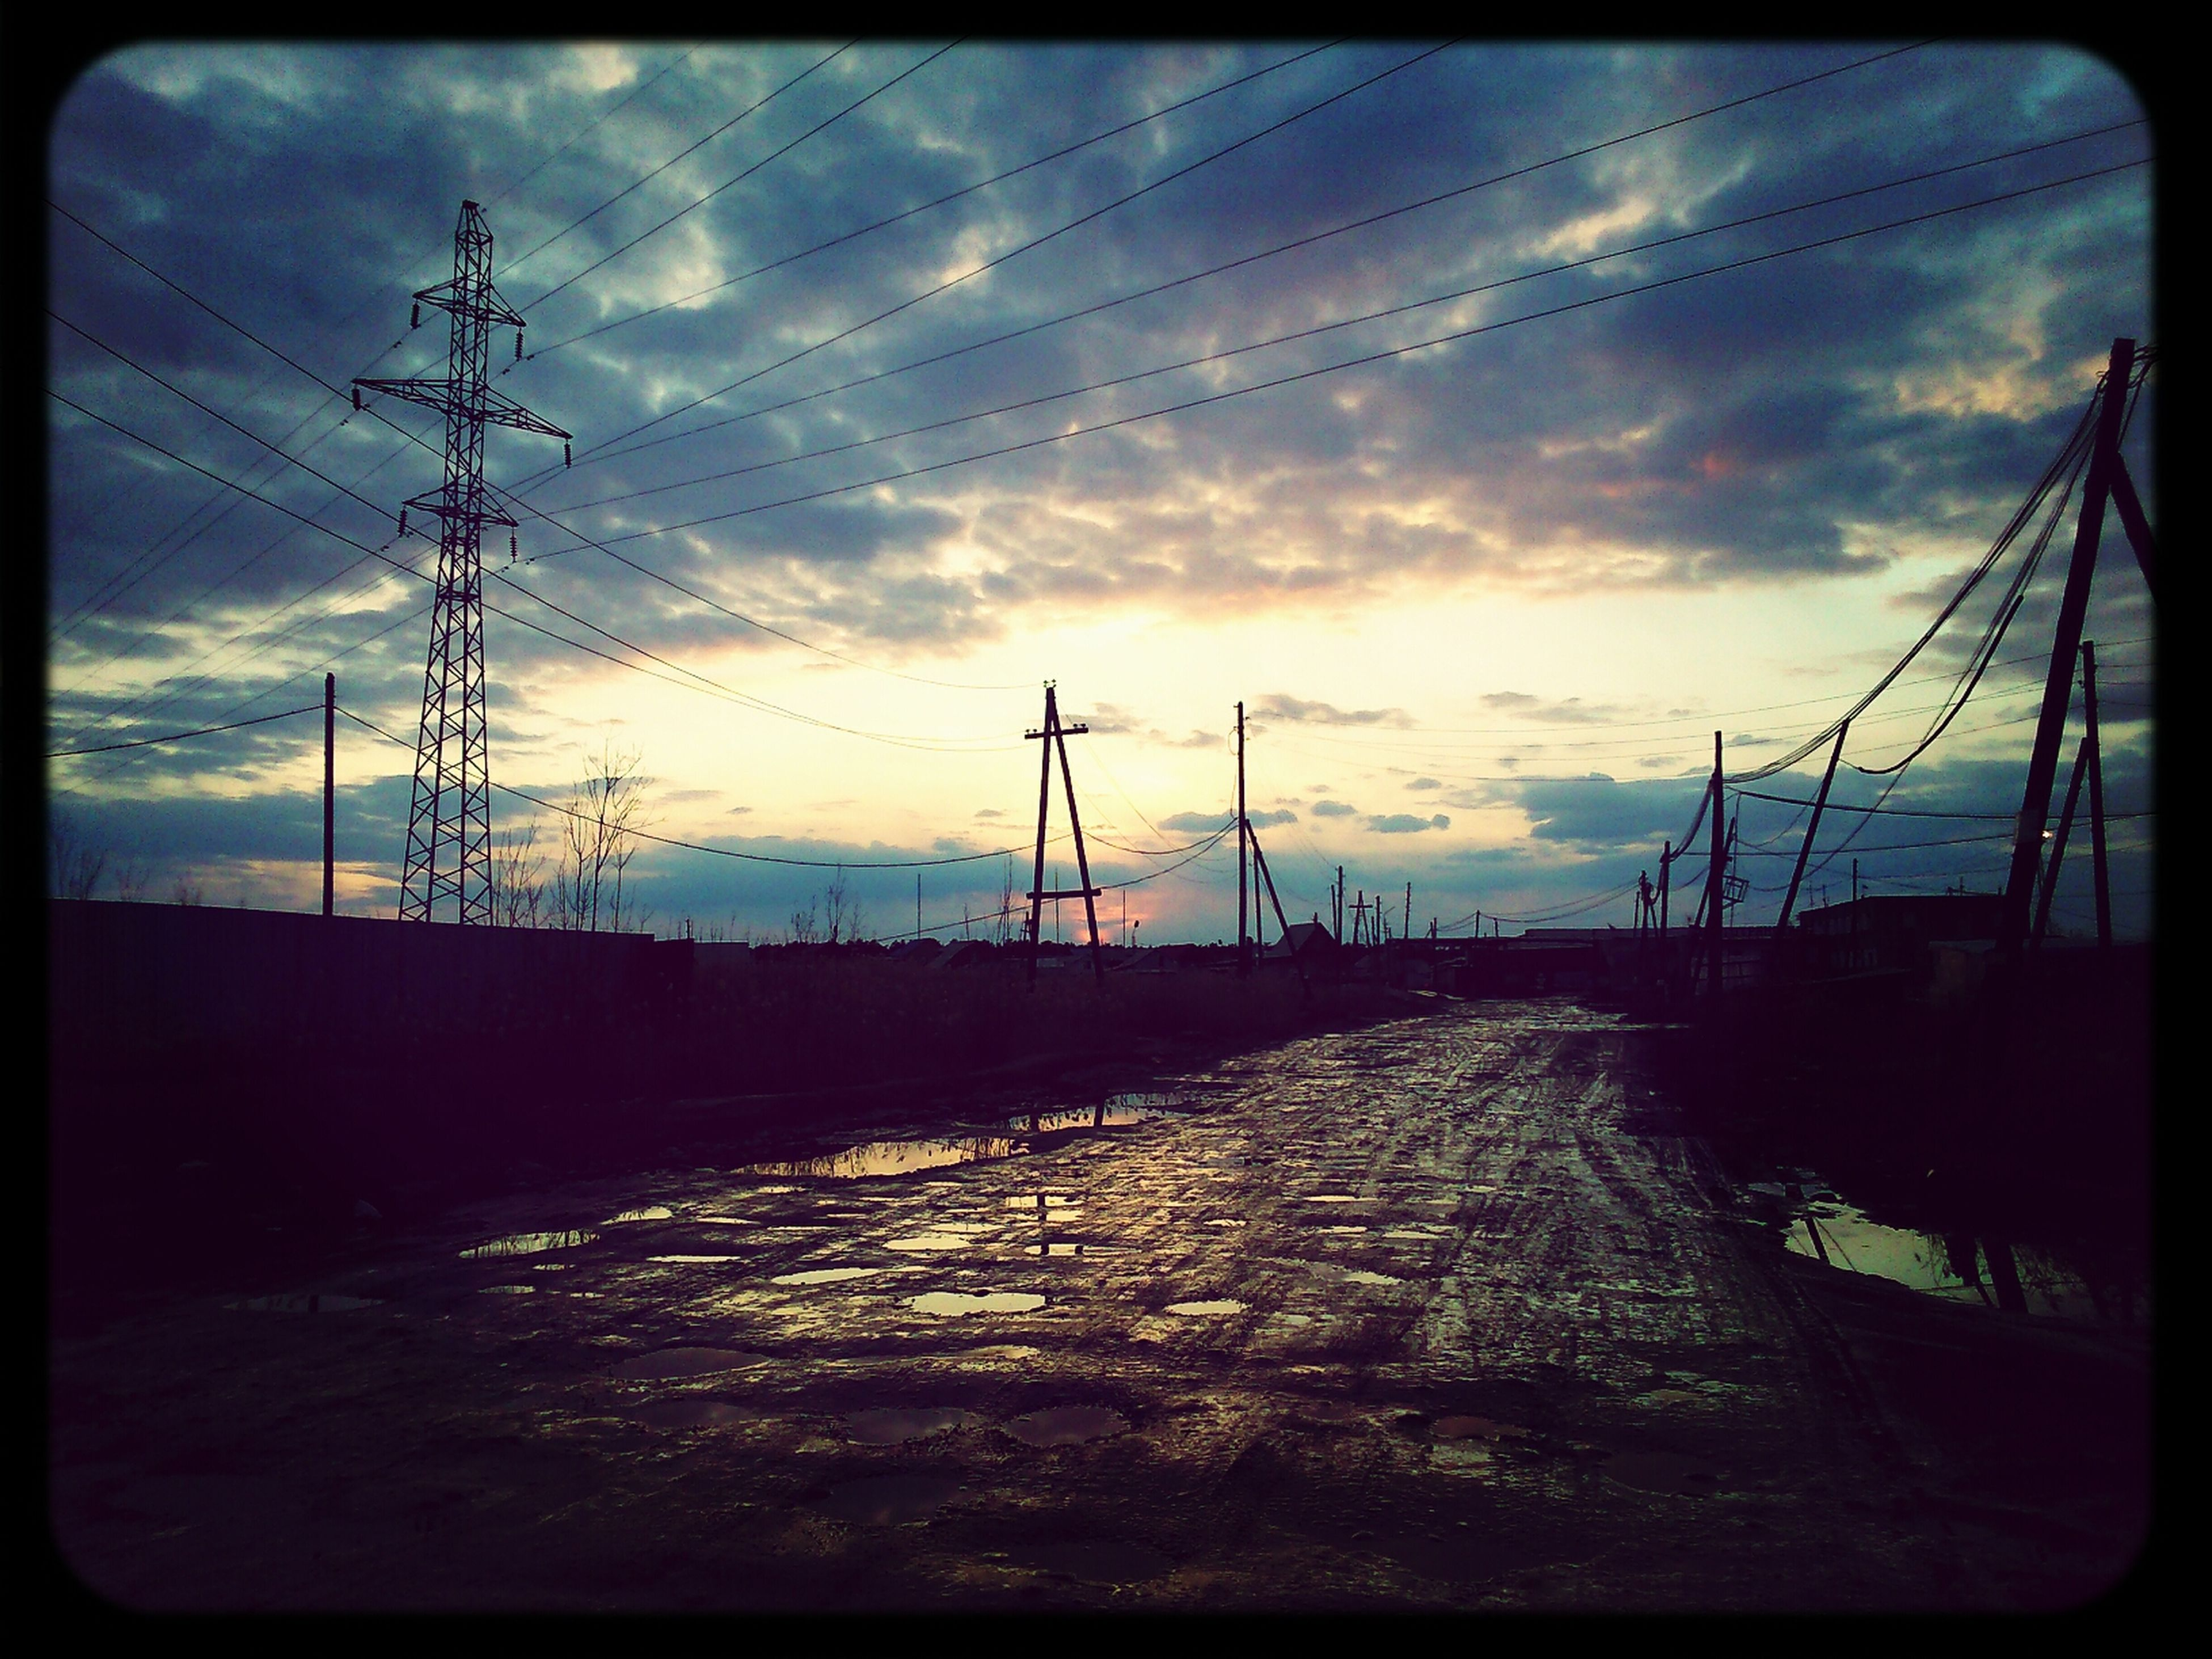 sunset, sky, transfer print, electricity pylon, cloud - sky, power line, auto post production filter, cloud, silhouette, power supply, cloudy, the way forward, electricity, fuel and power generation, dramatic sky, road, dusk, orange color, connection, outdoors